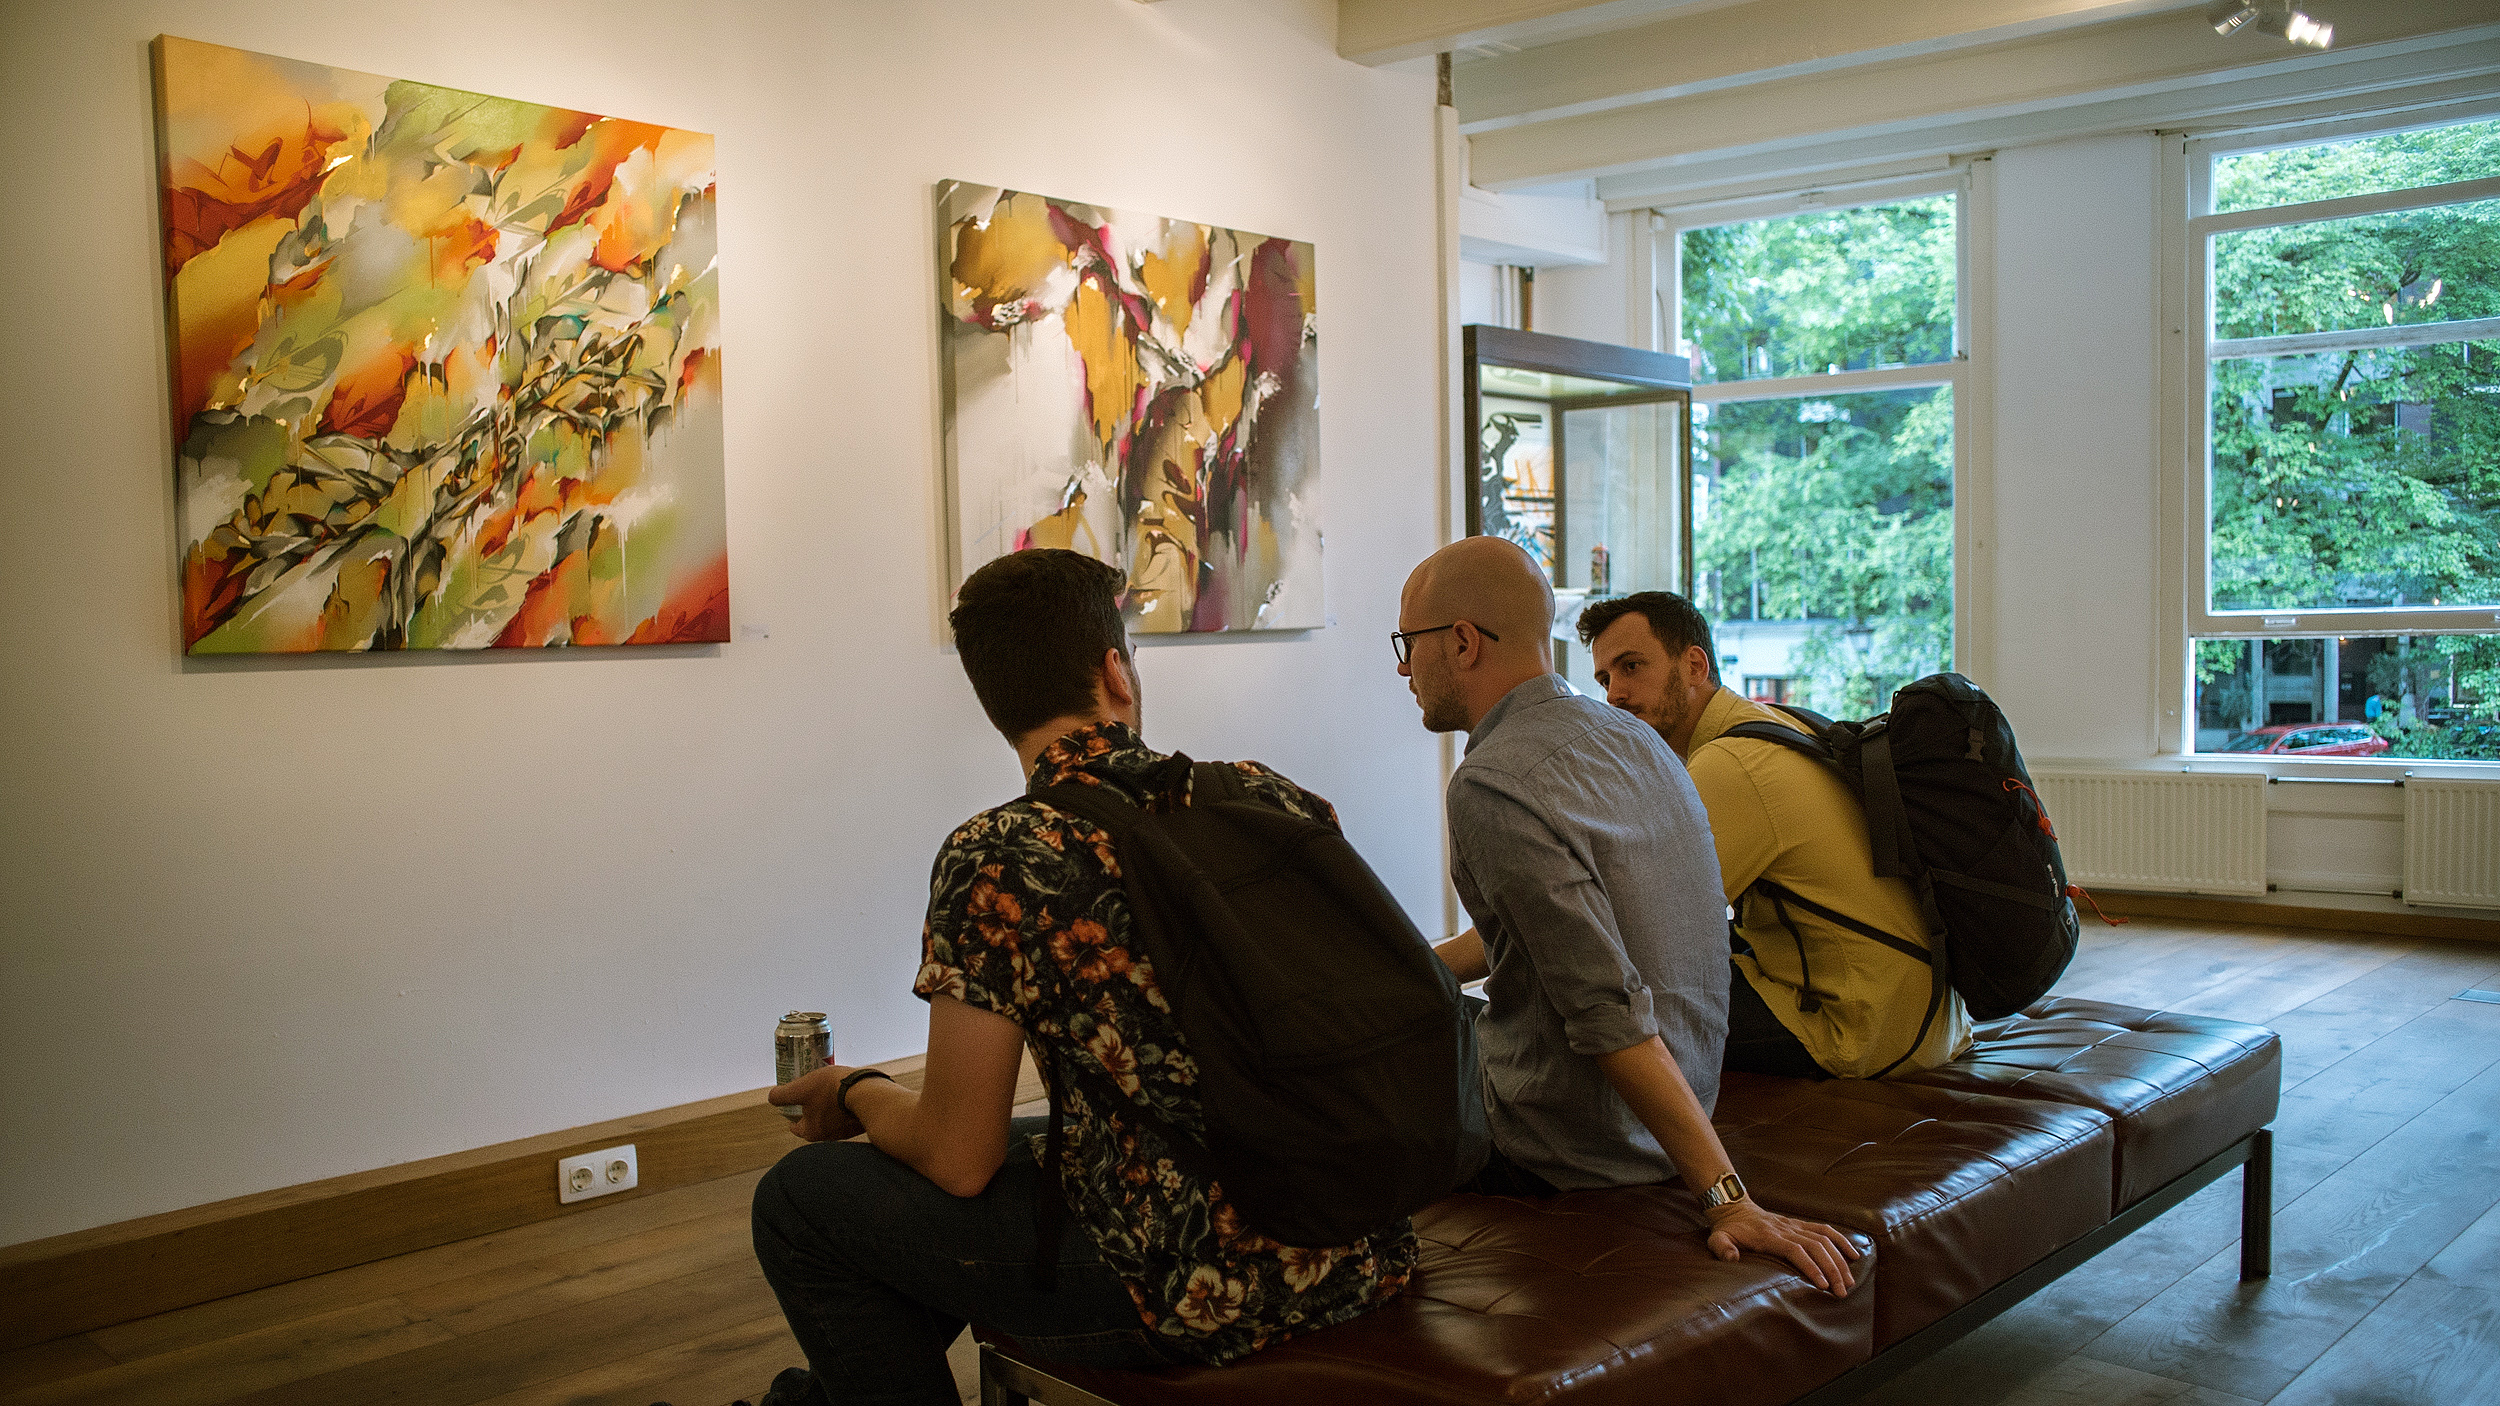 A work by Does - Authenticus exhibition amsterdam dampkring gallery 1